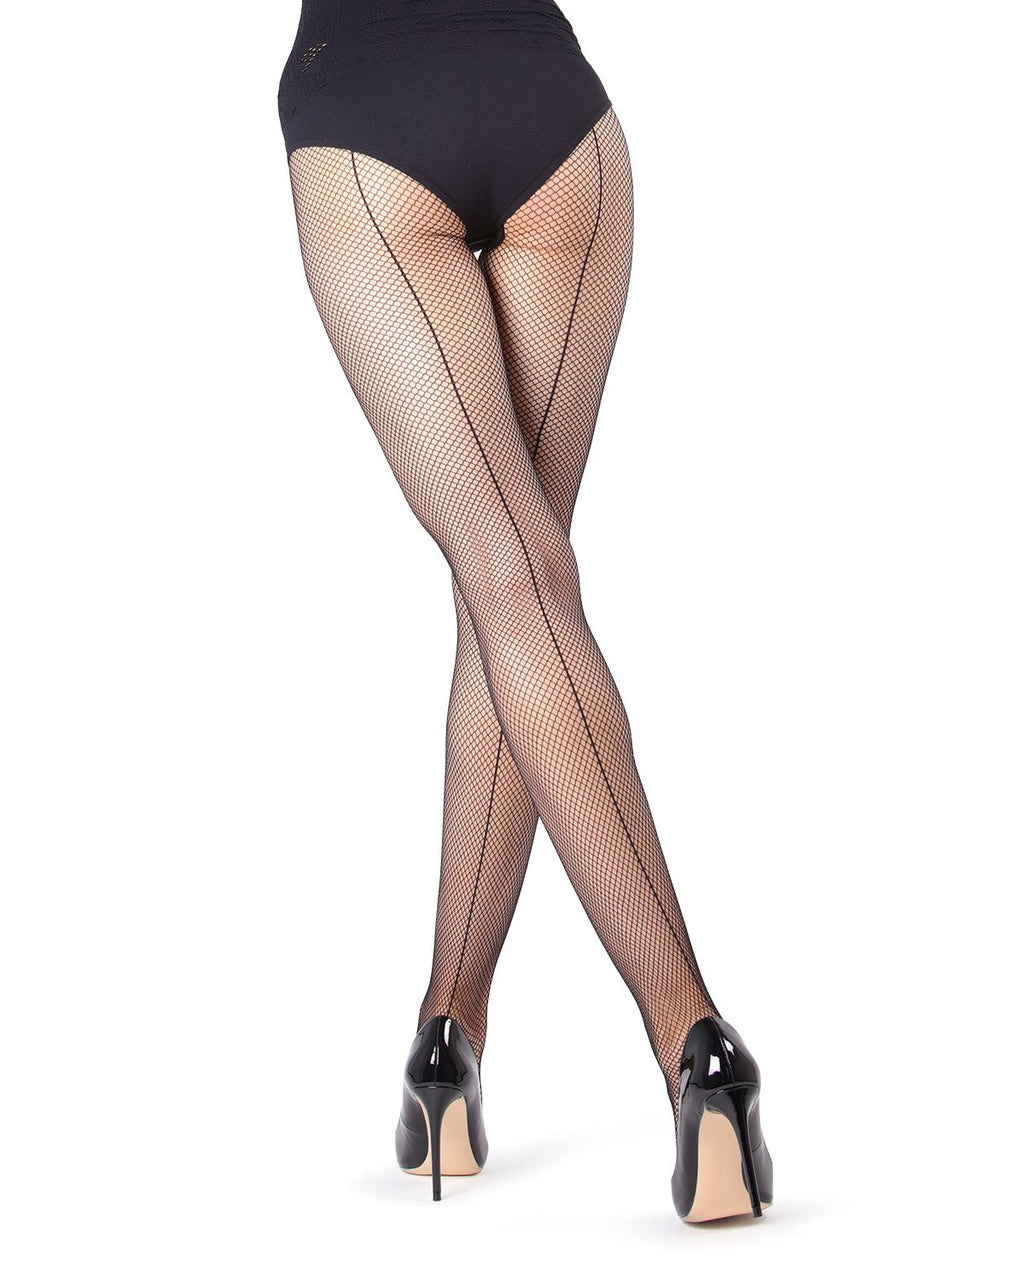 MeMoi | Black Backseam Fishnet Tights | Women's Tights